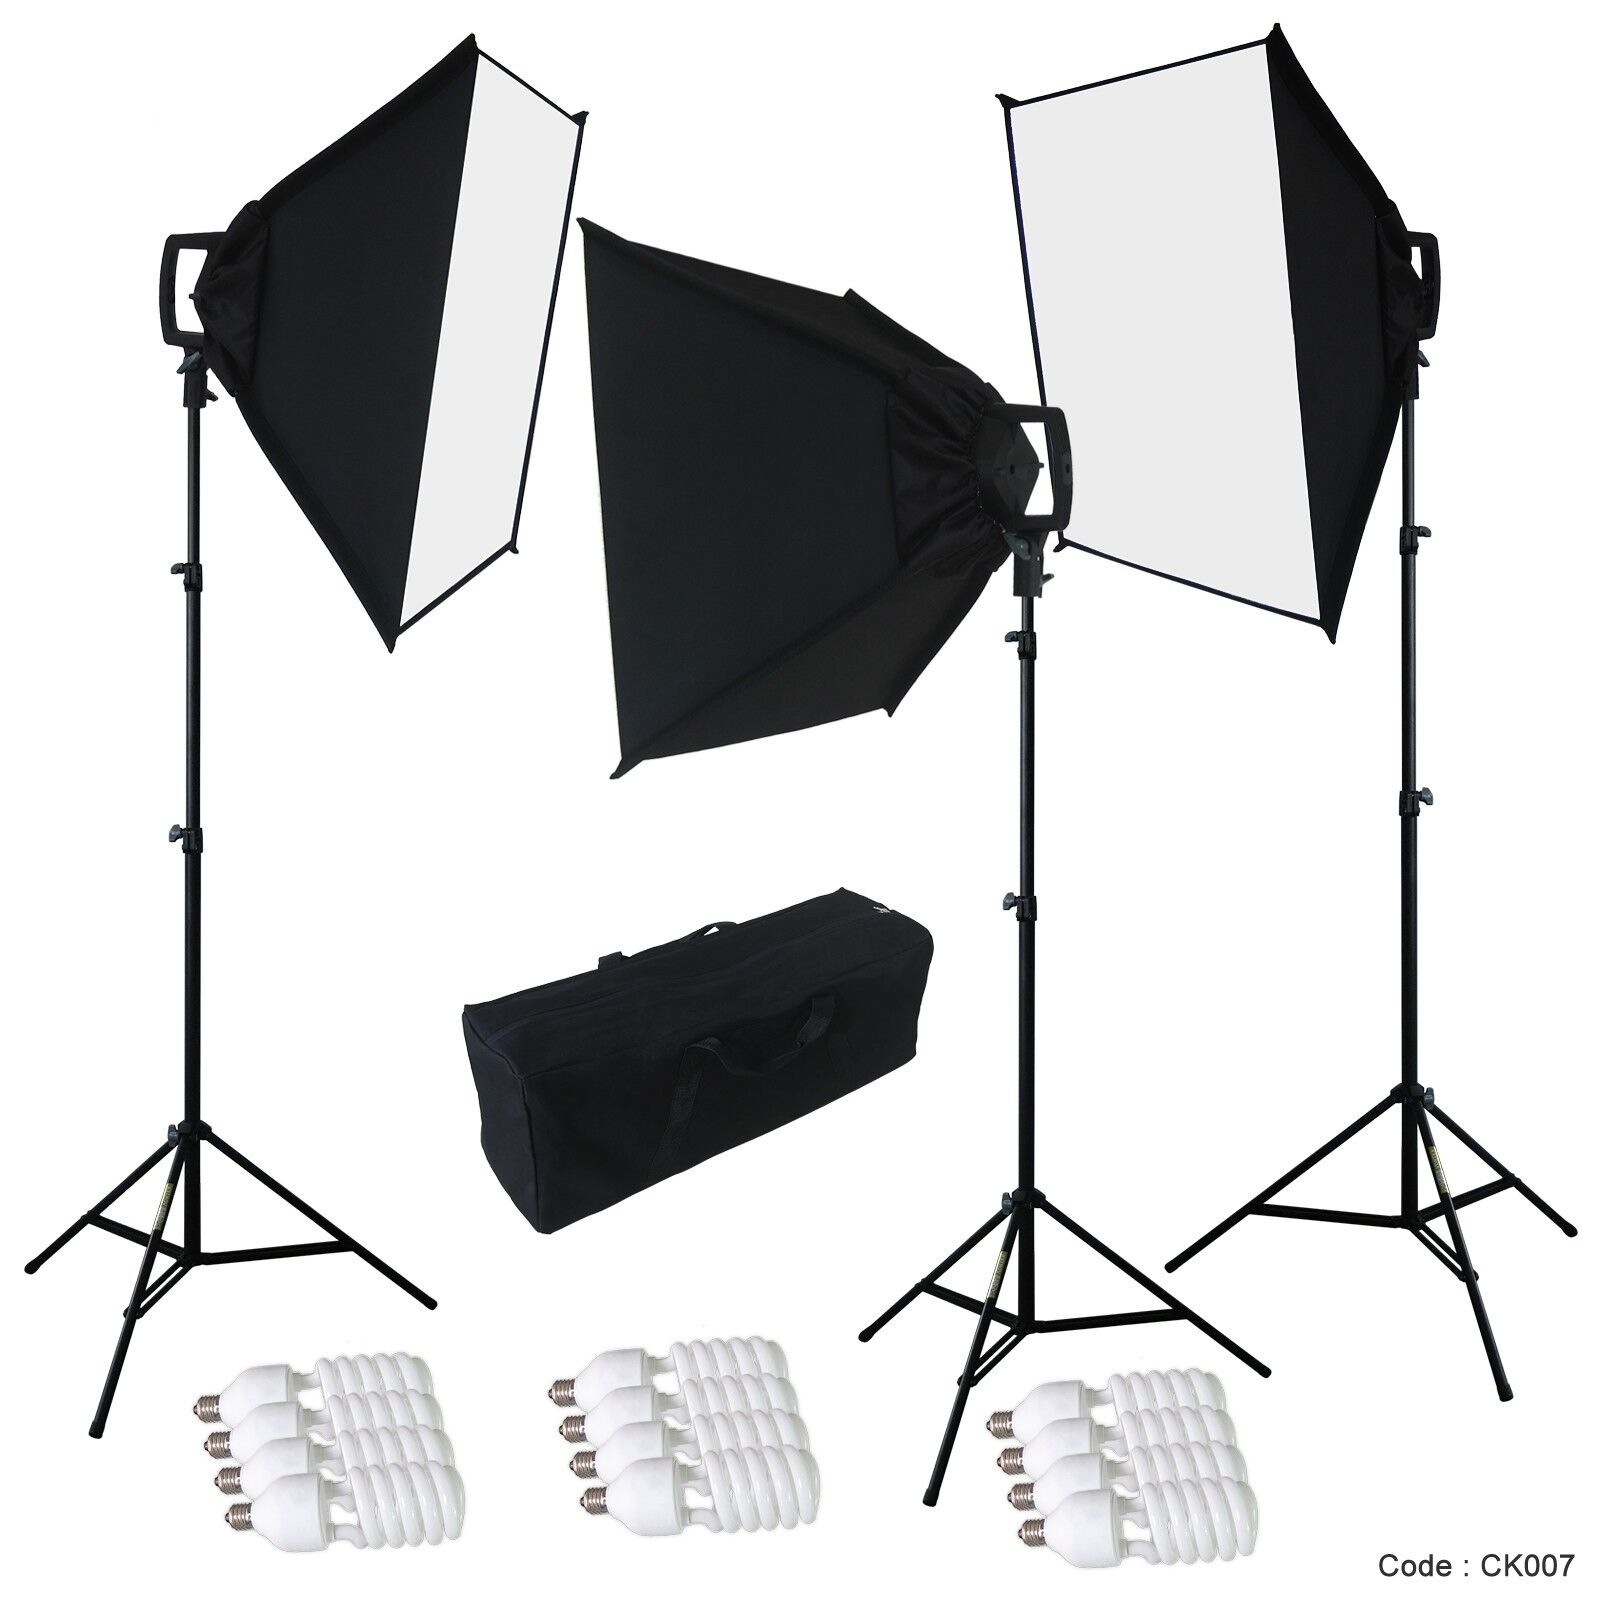 Britek Photo Studio Lighting Softbox Kit Stand Bag Photog.  sc 1 st  Nextag & Britek lighting kit | Compare Prices at Nextag azcodes.com